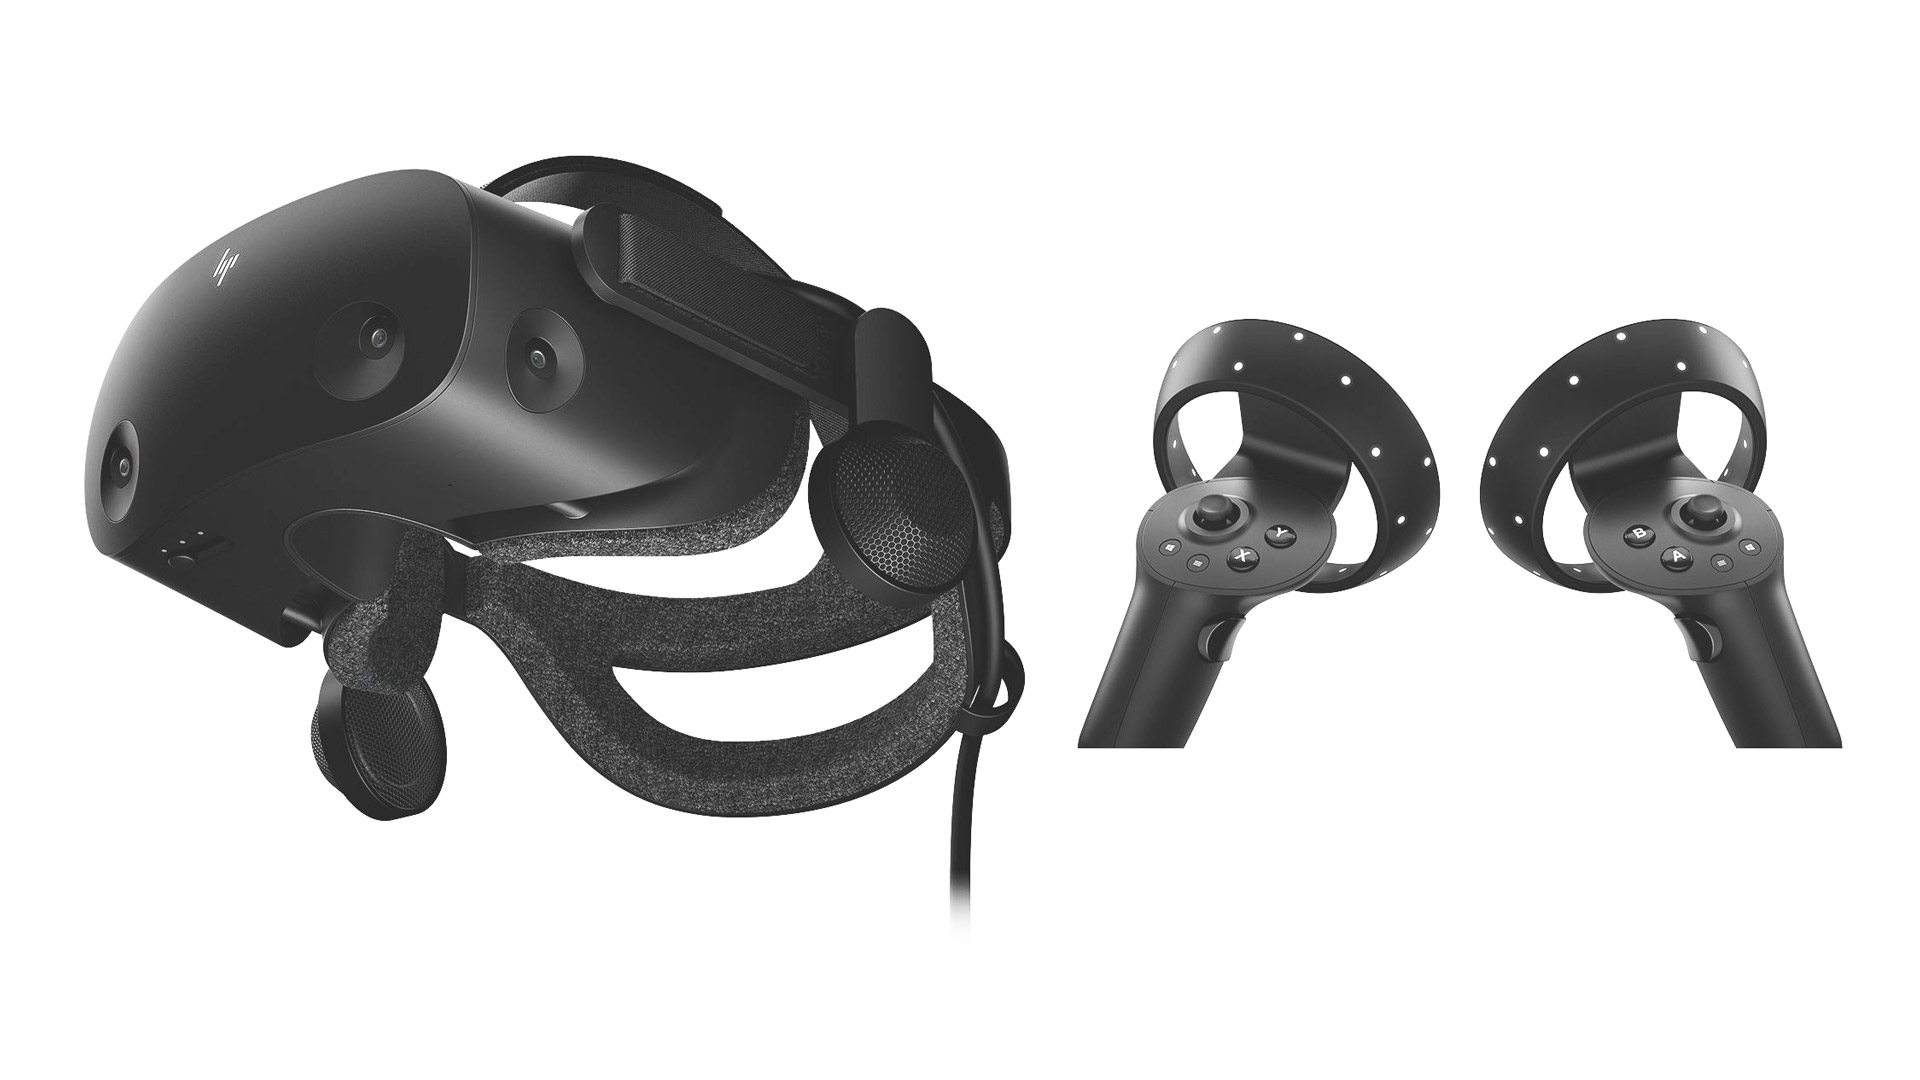 HP's Reverb G2 is the ultimate headset for sim racing in VR